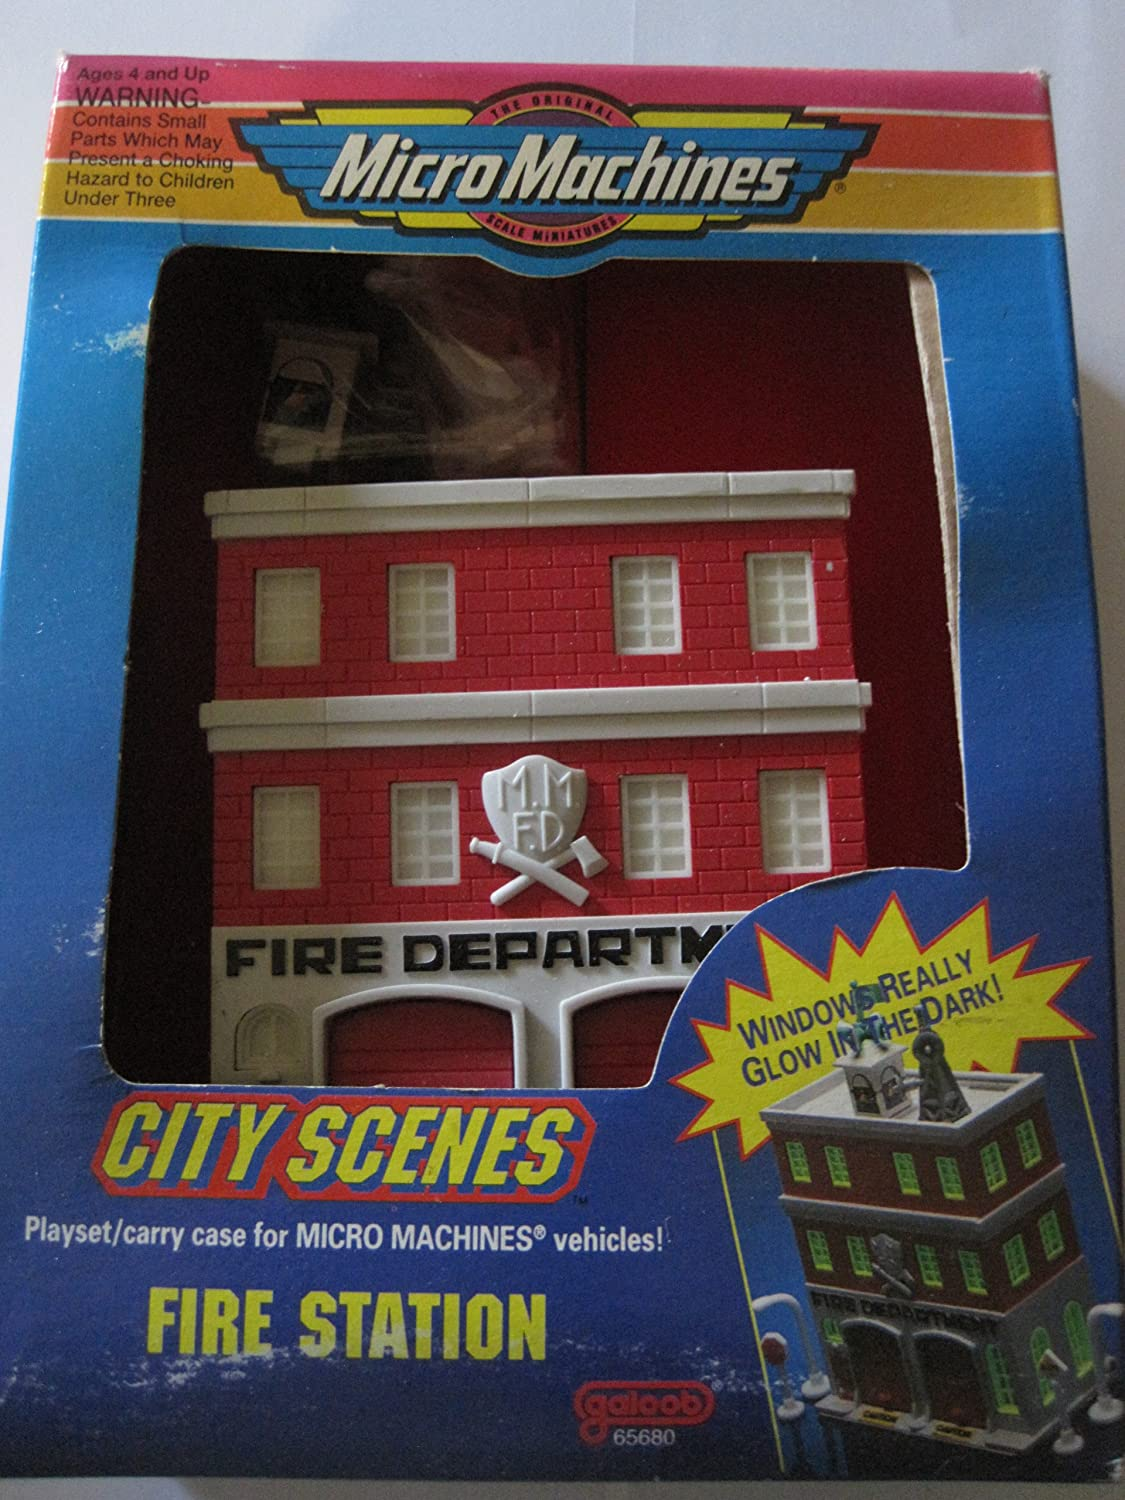 Micro Machines City scenes playset//carry case for micro machines Vehicles Fire Station